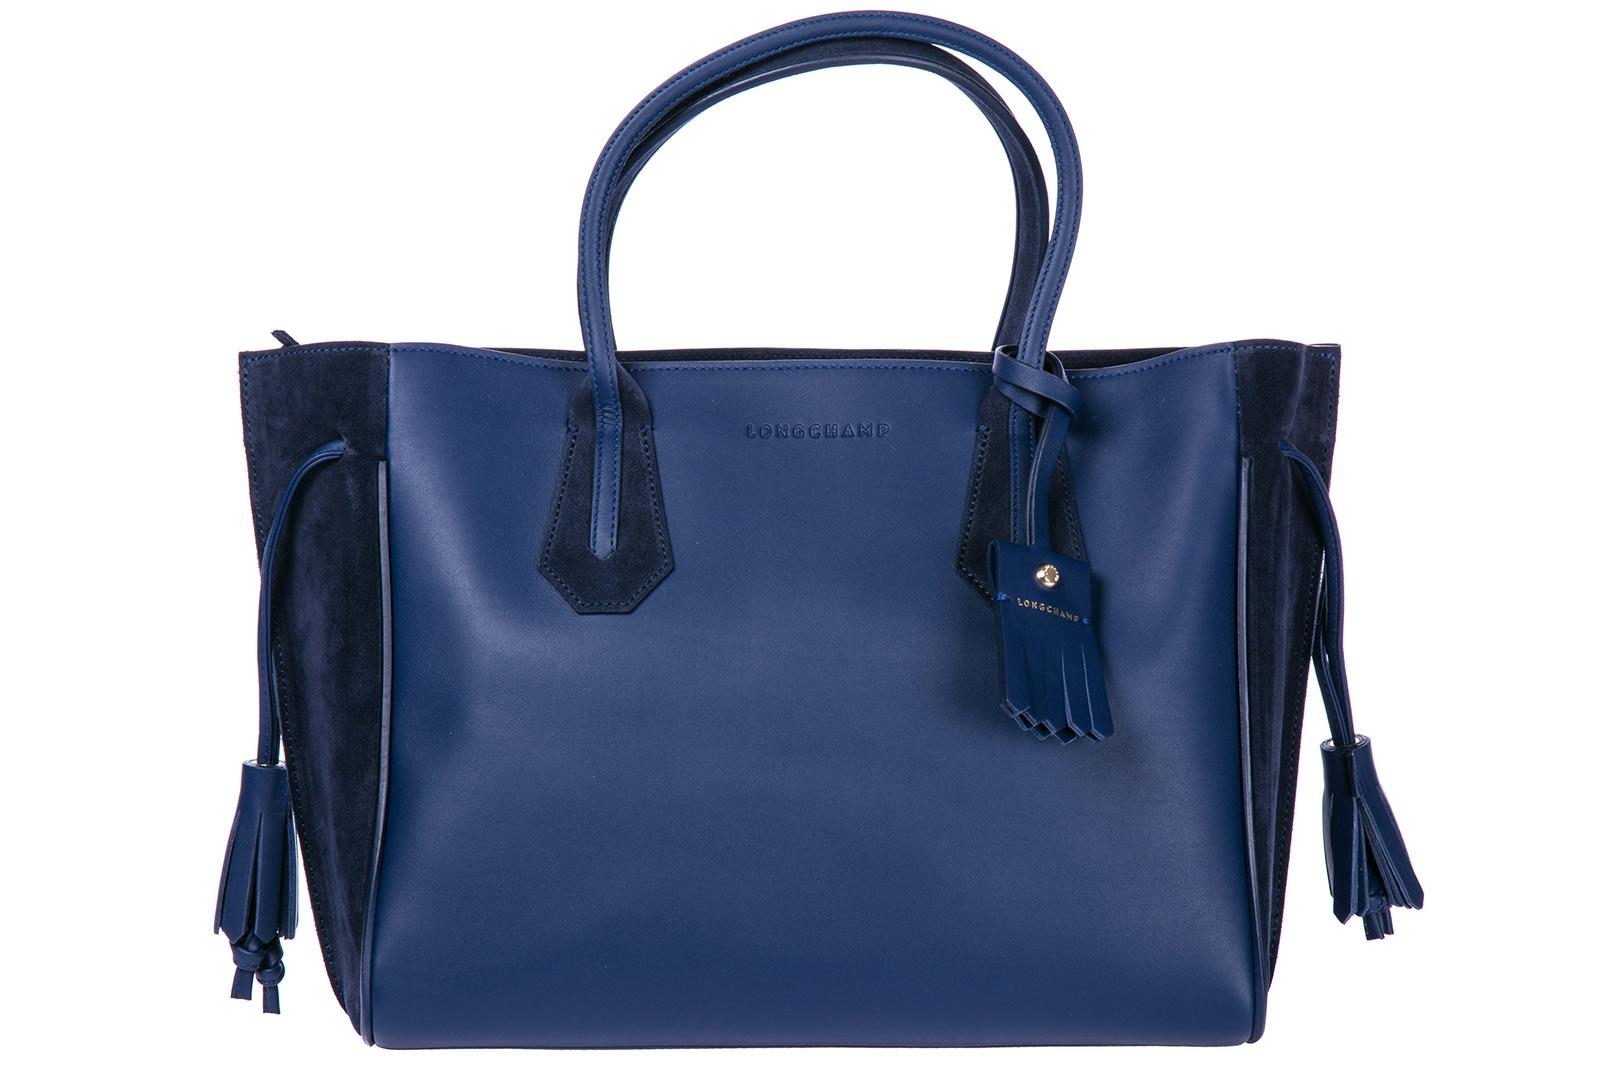 Longchamp Women's Leather Shoulder Bag In Blue